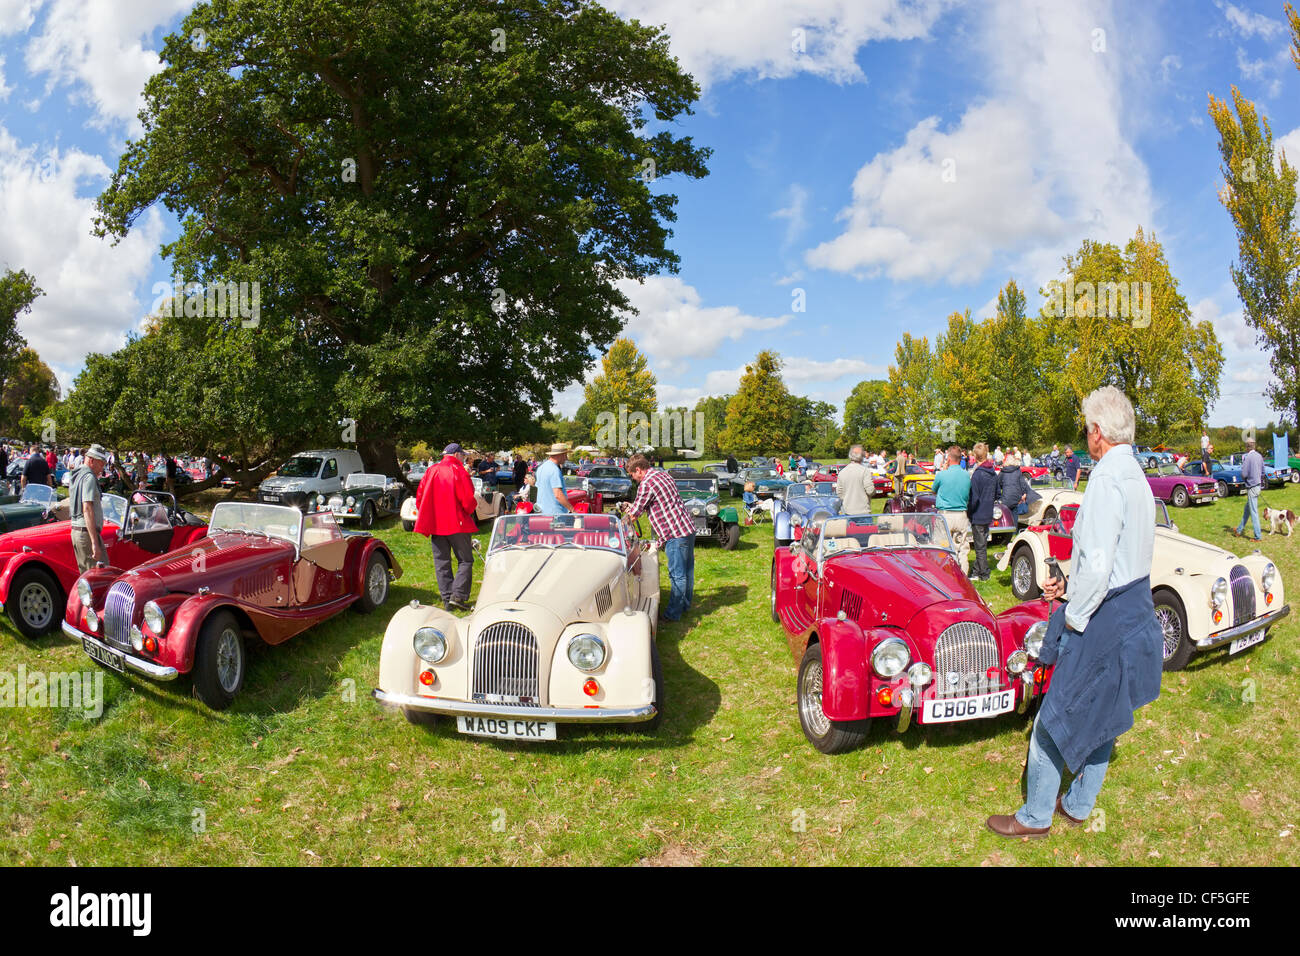 A row of Morgan sports cars on display at the Thornfalcon Classic Car meeting. - Stock Image